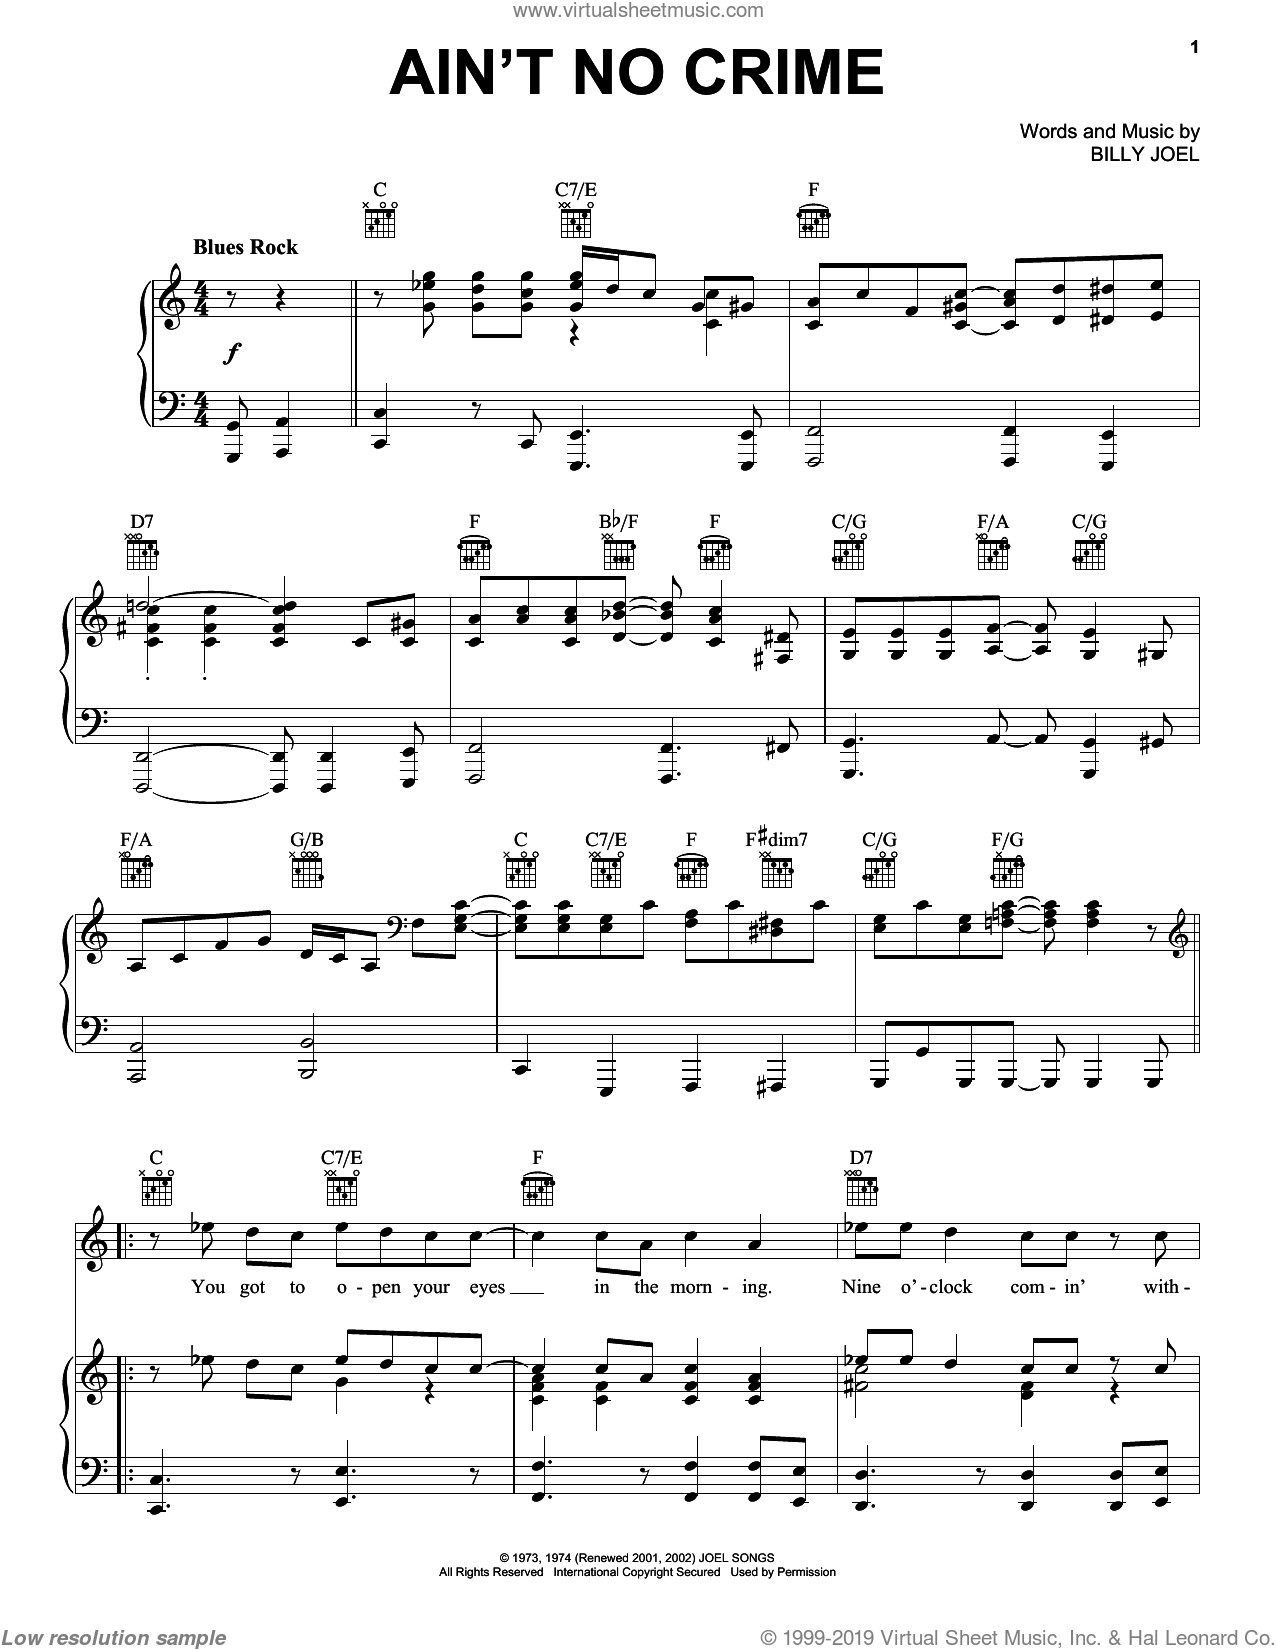 Ain't No Crime sheet music for voice, piano or guitar by Billy Joel and David Rosenthal, intermediate skill level